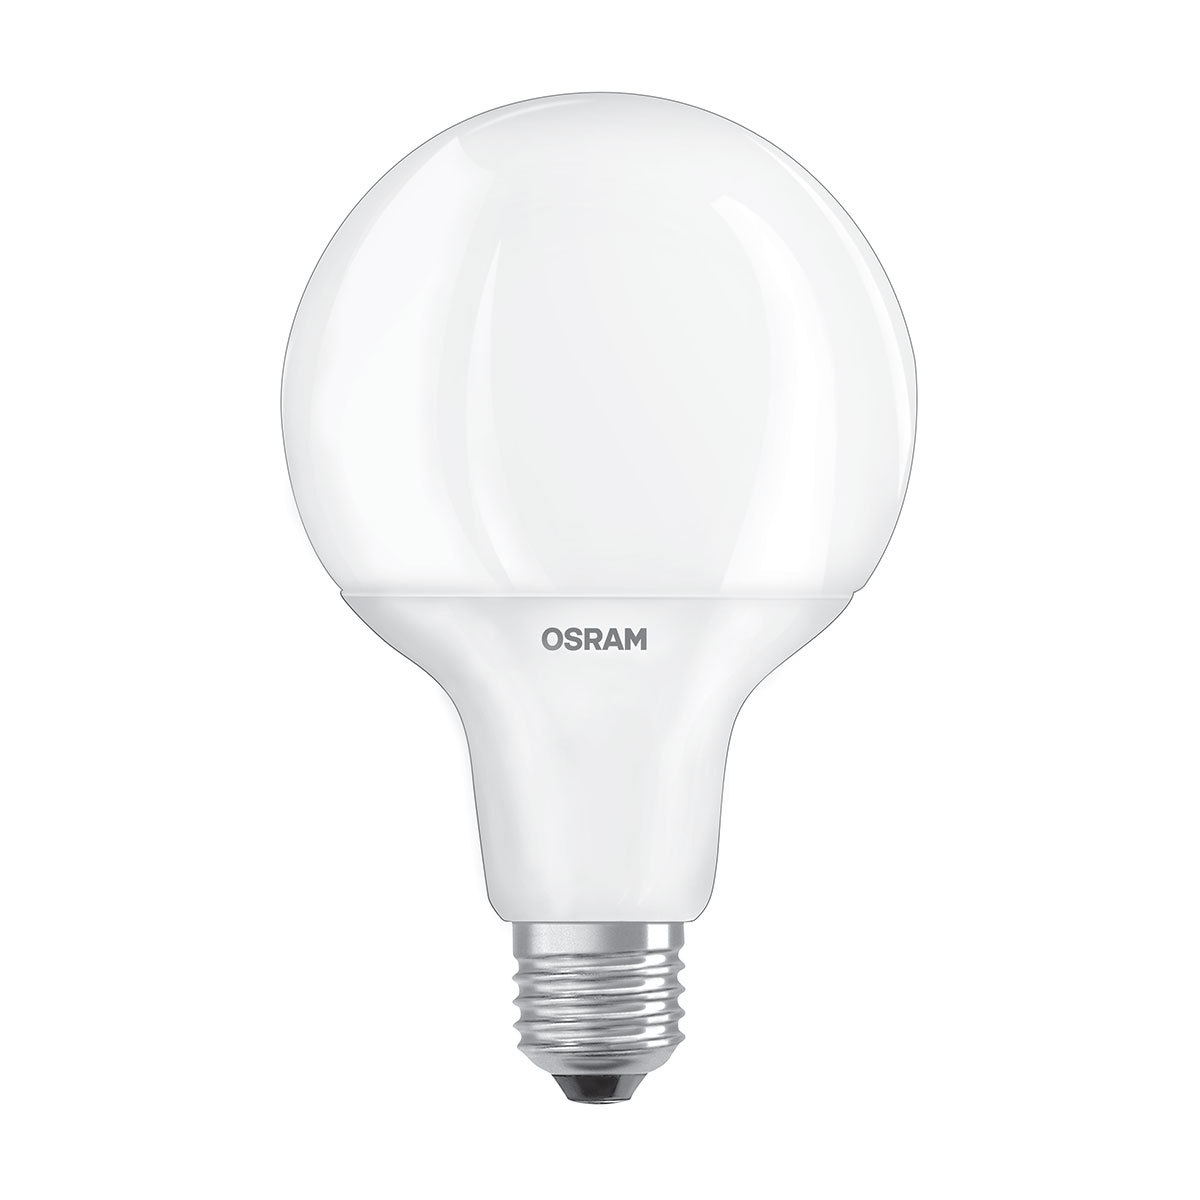 osram ampoule led superstar classic globe e27 9w 60w dimmable a ampoule led osram sur ldlc. Black Bedroom Furniture Sets. Home Design Ideas